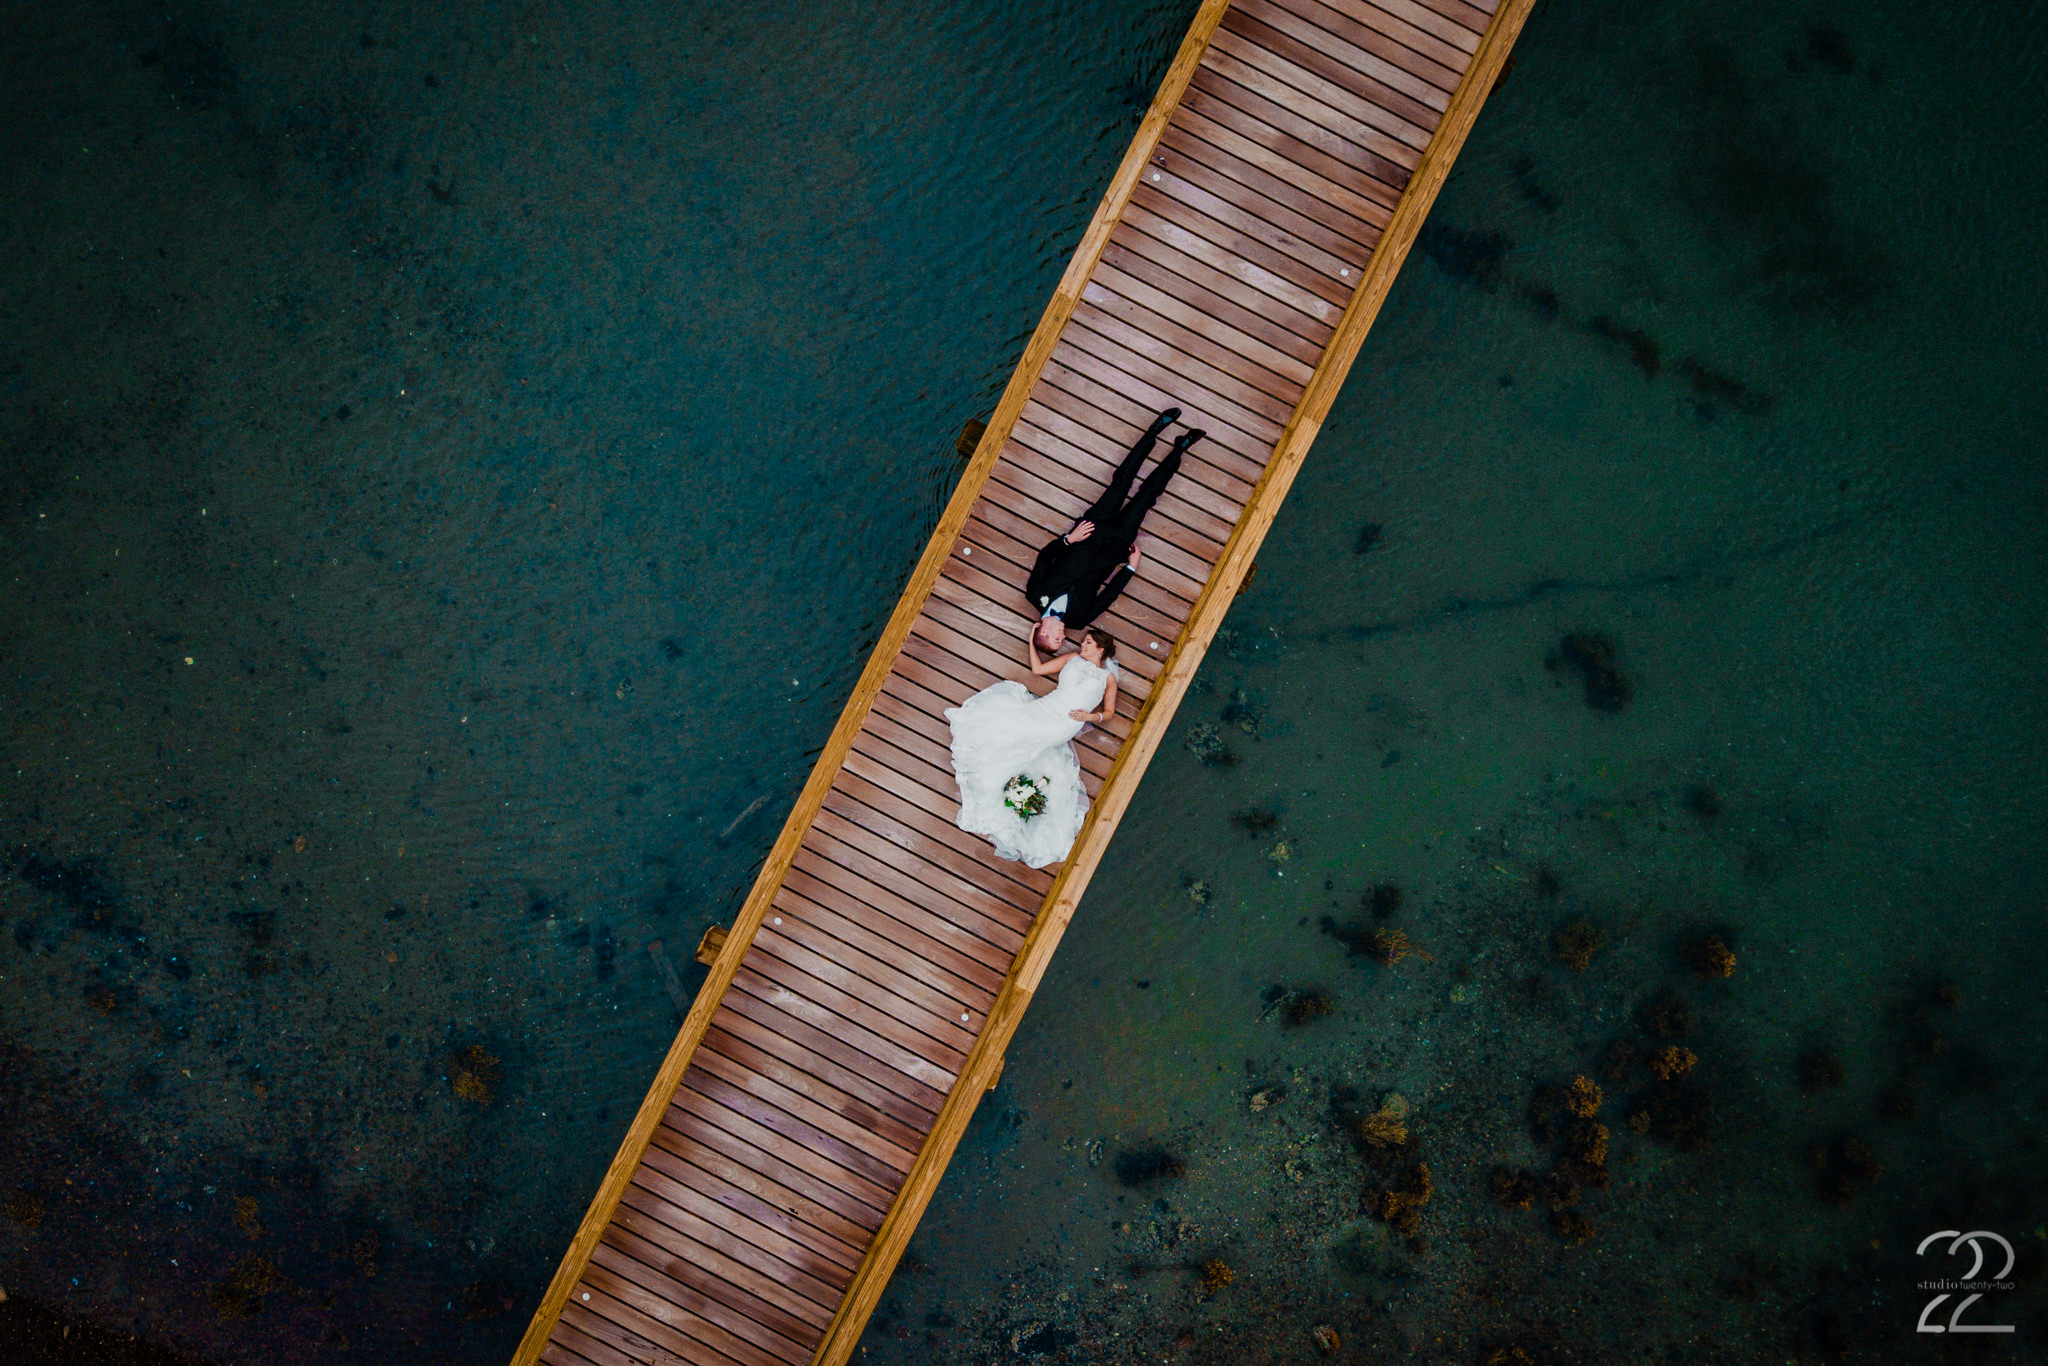 Studio 22 Photography is always working on staying ahead of the game with regards to new photography techniques and gear. Using a drone, Megan was able to create this sensational wedding portrait for Andrea and Patrick at their wedding in Maine.